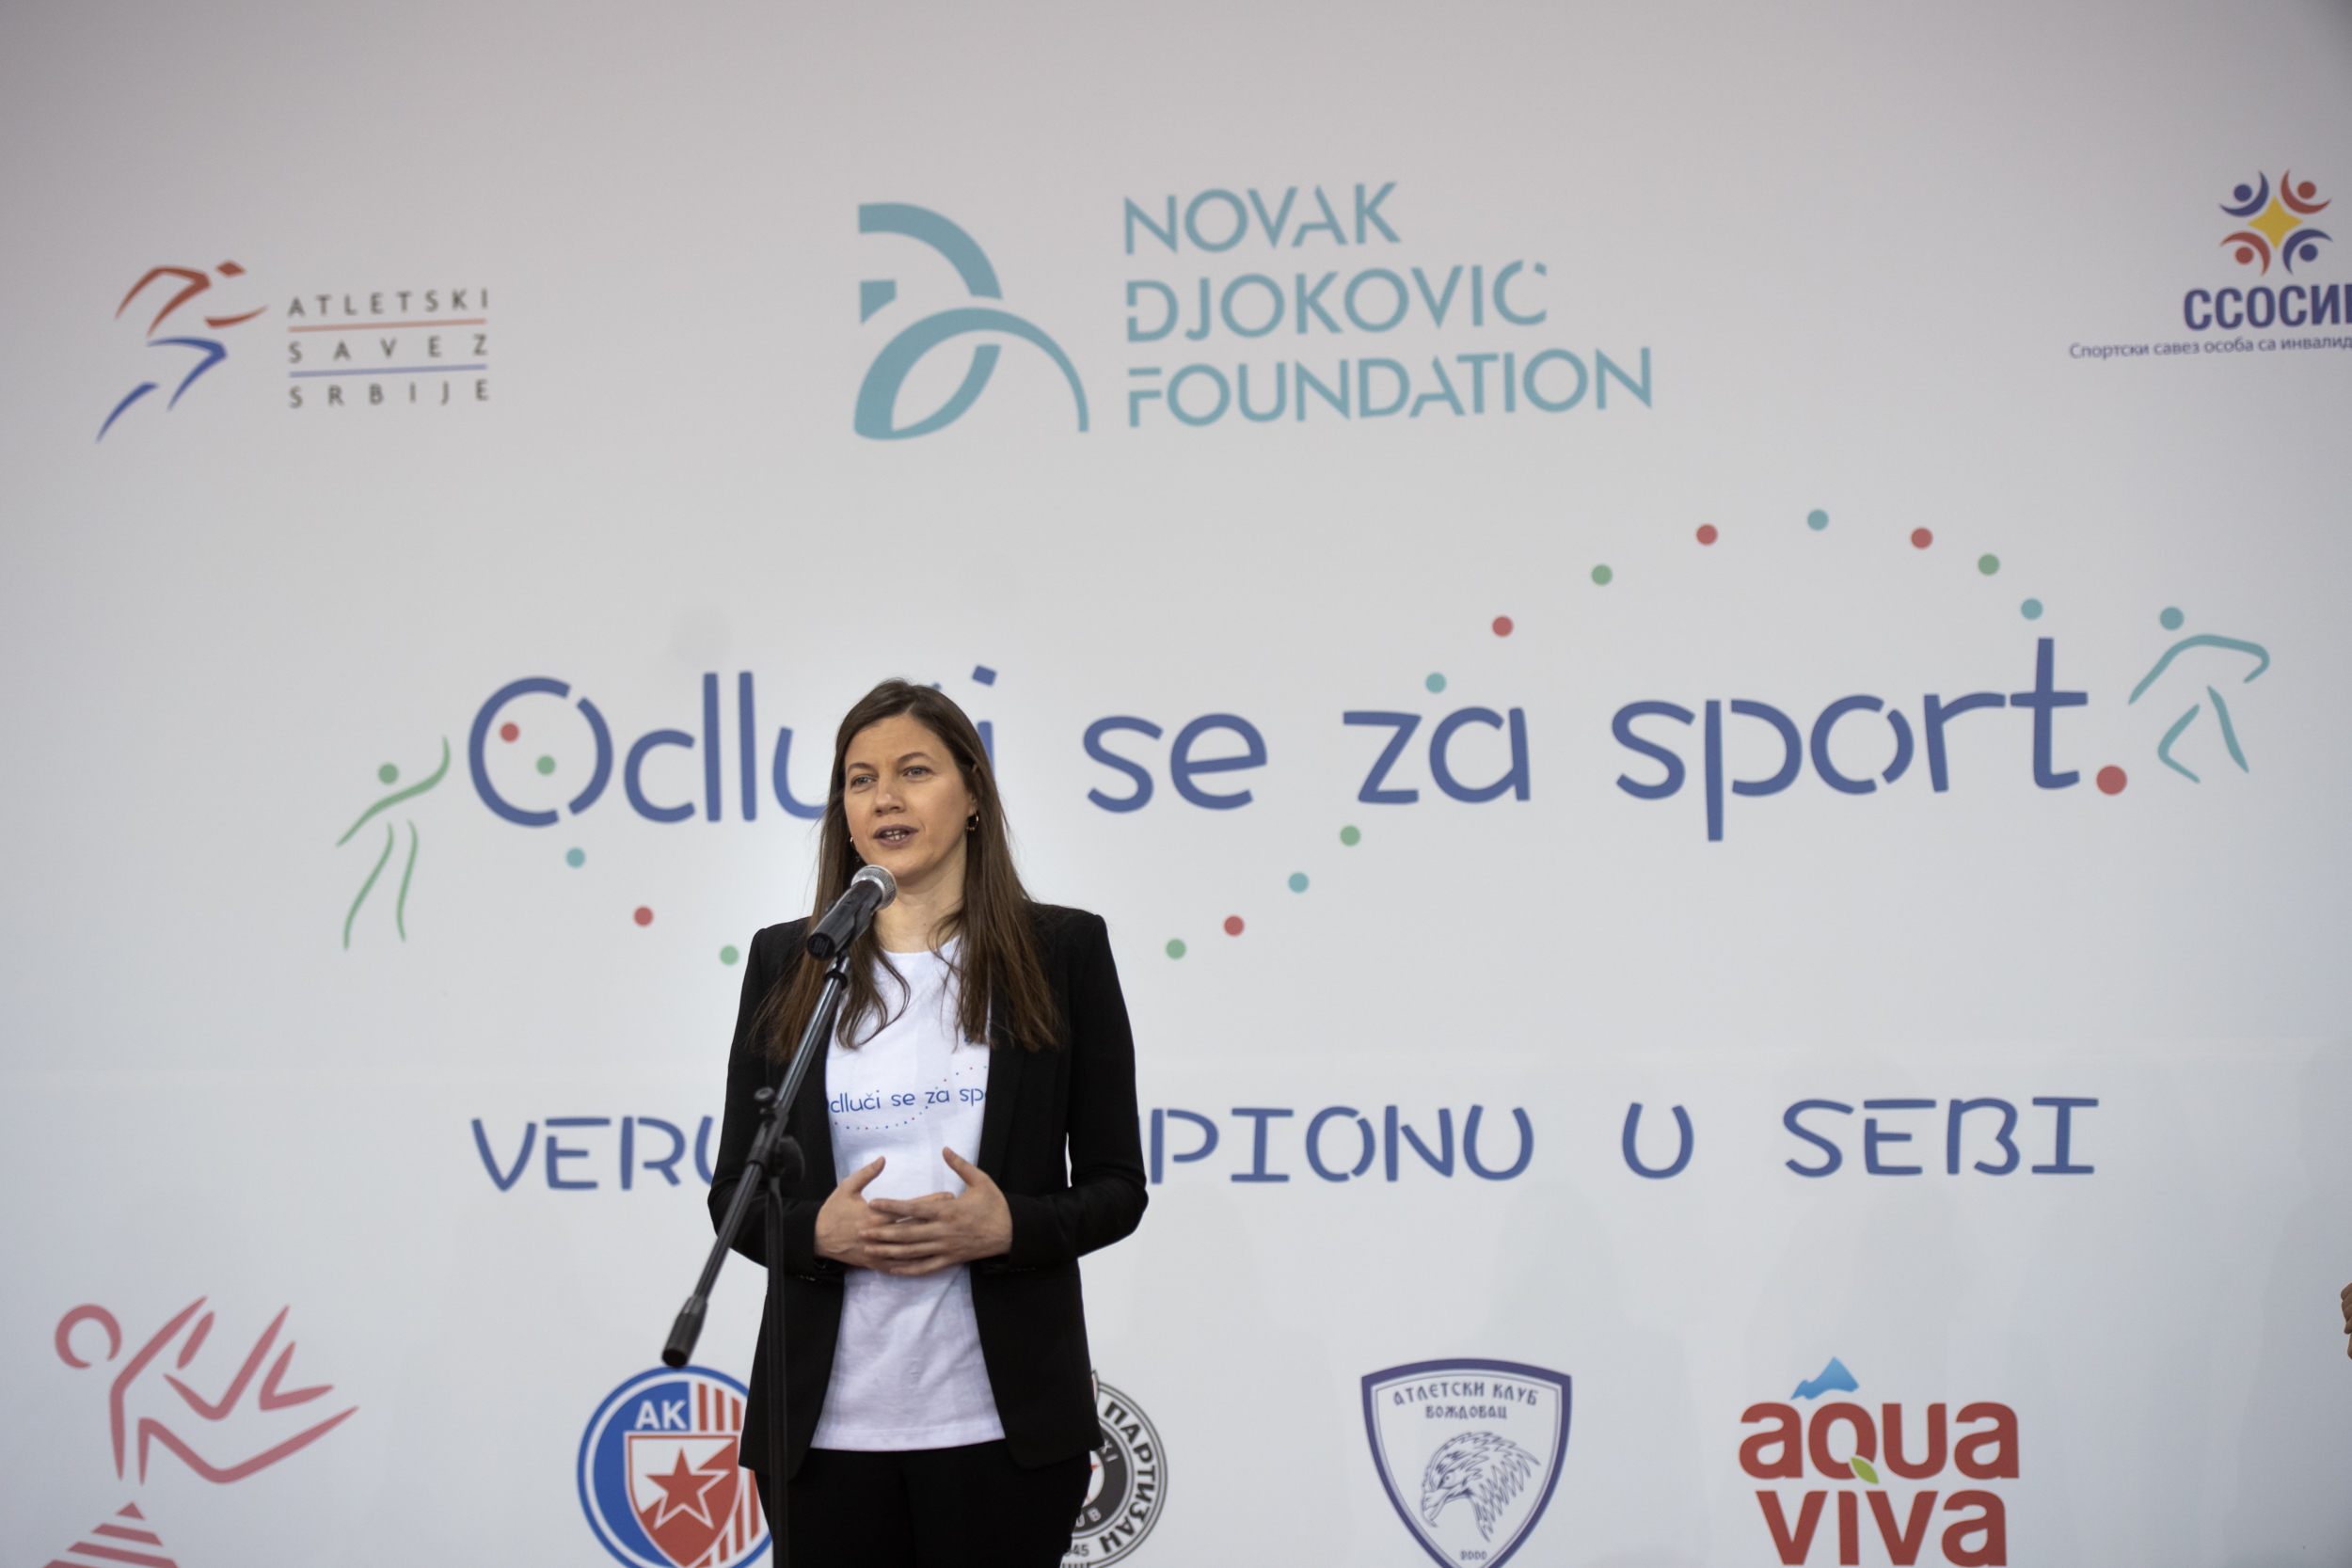 The national director of the Foundation, Maja Kremic, shared in her speech the support of our co founder Novak Djokovic